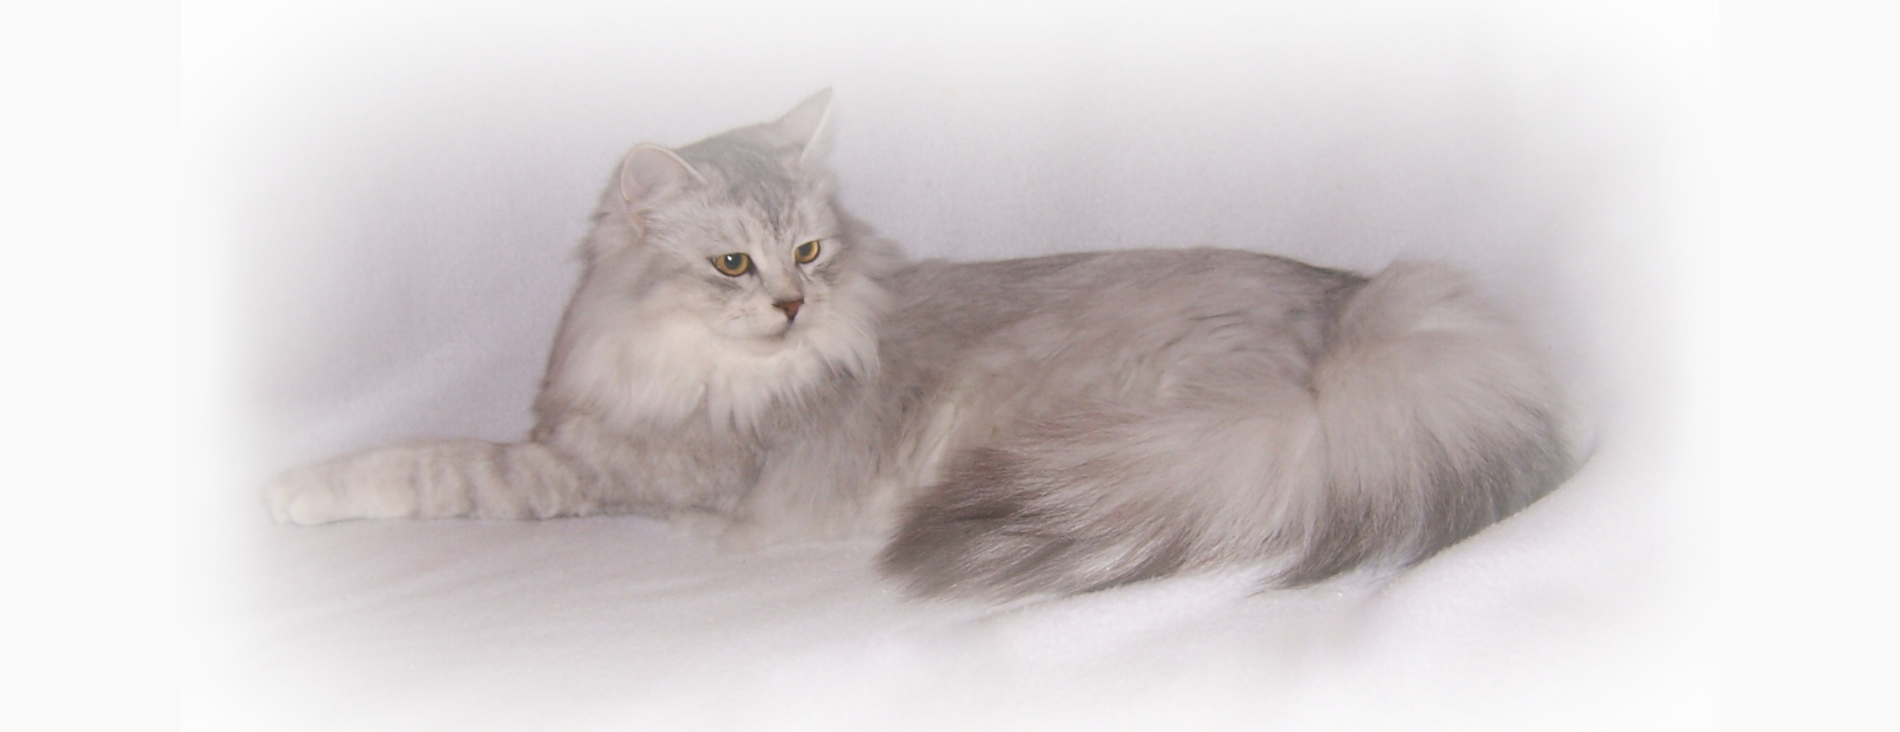 Siberian Kittens For Sale In Ny Can Cats Really Be Hypoallergenic